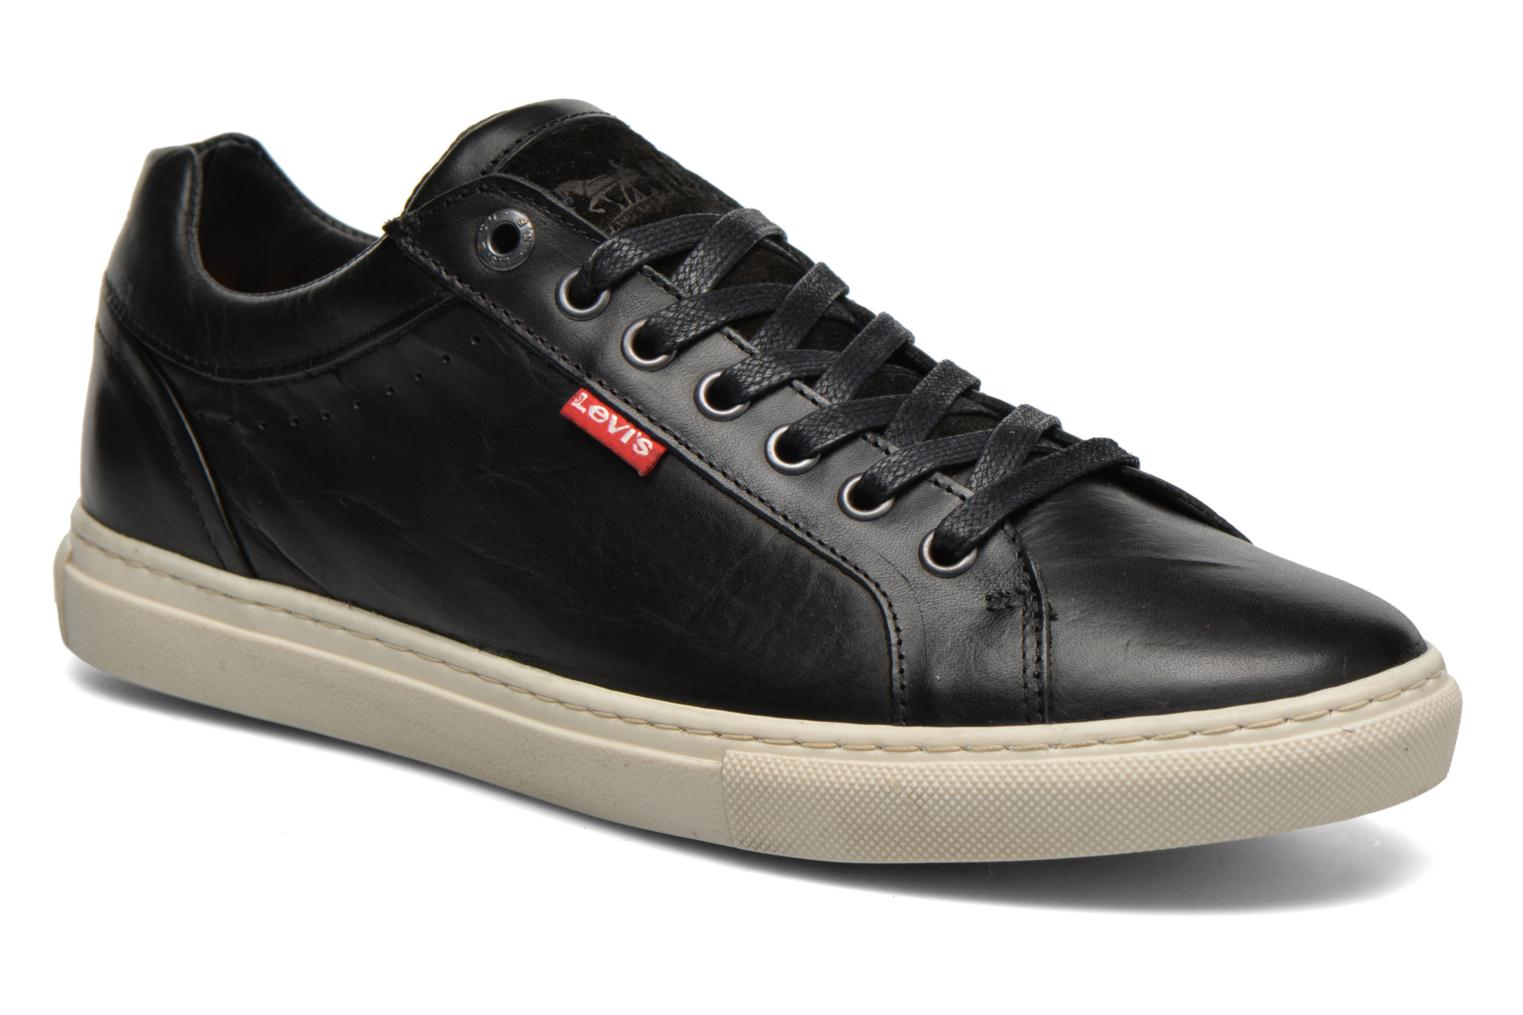 Perris Derby Regular Black